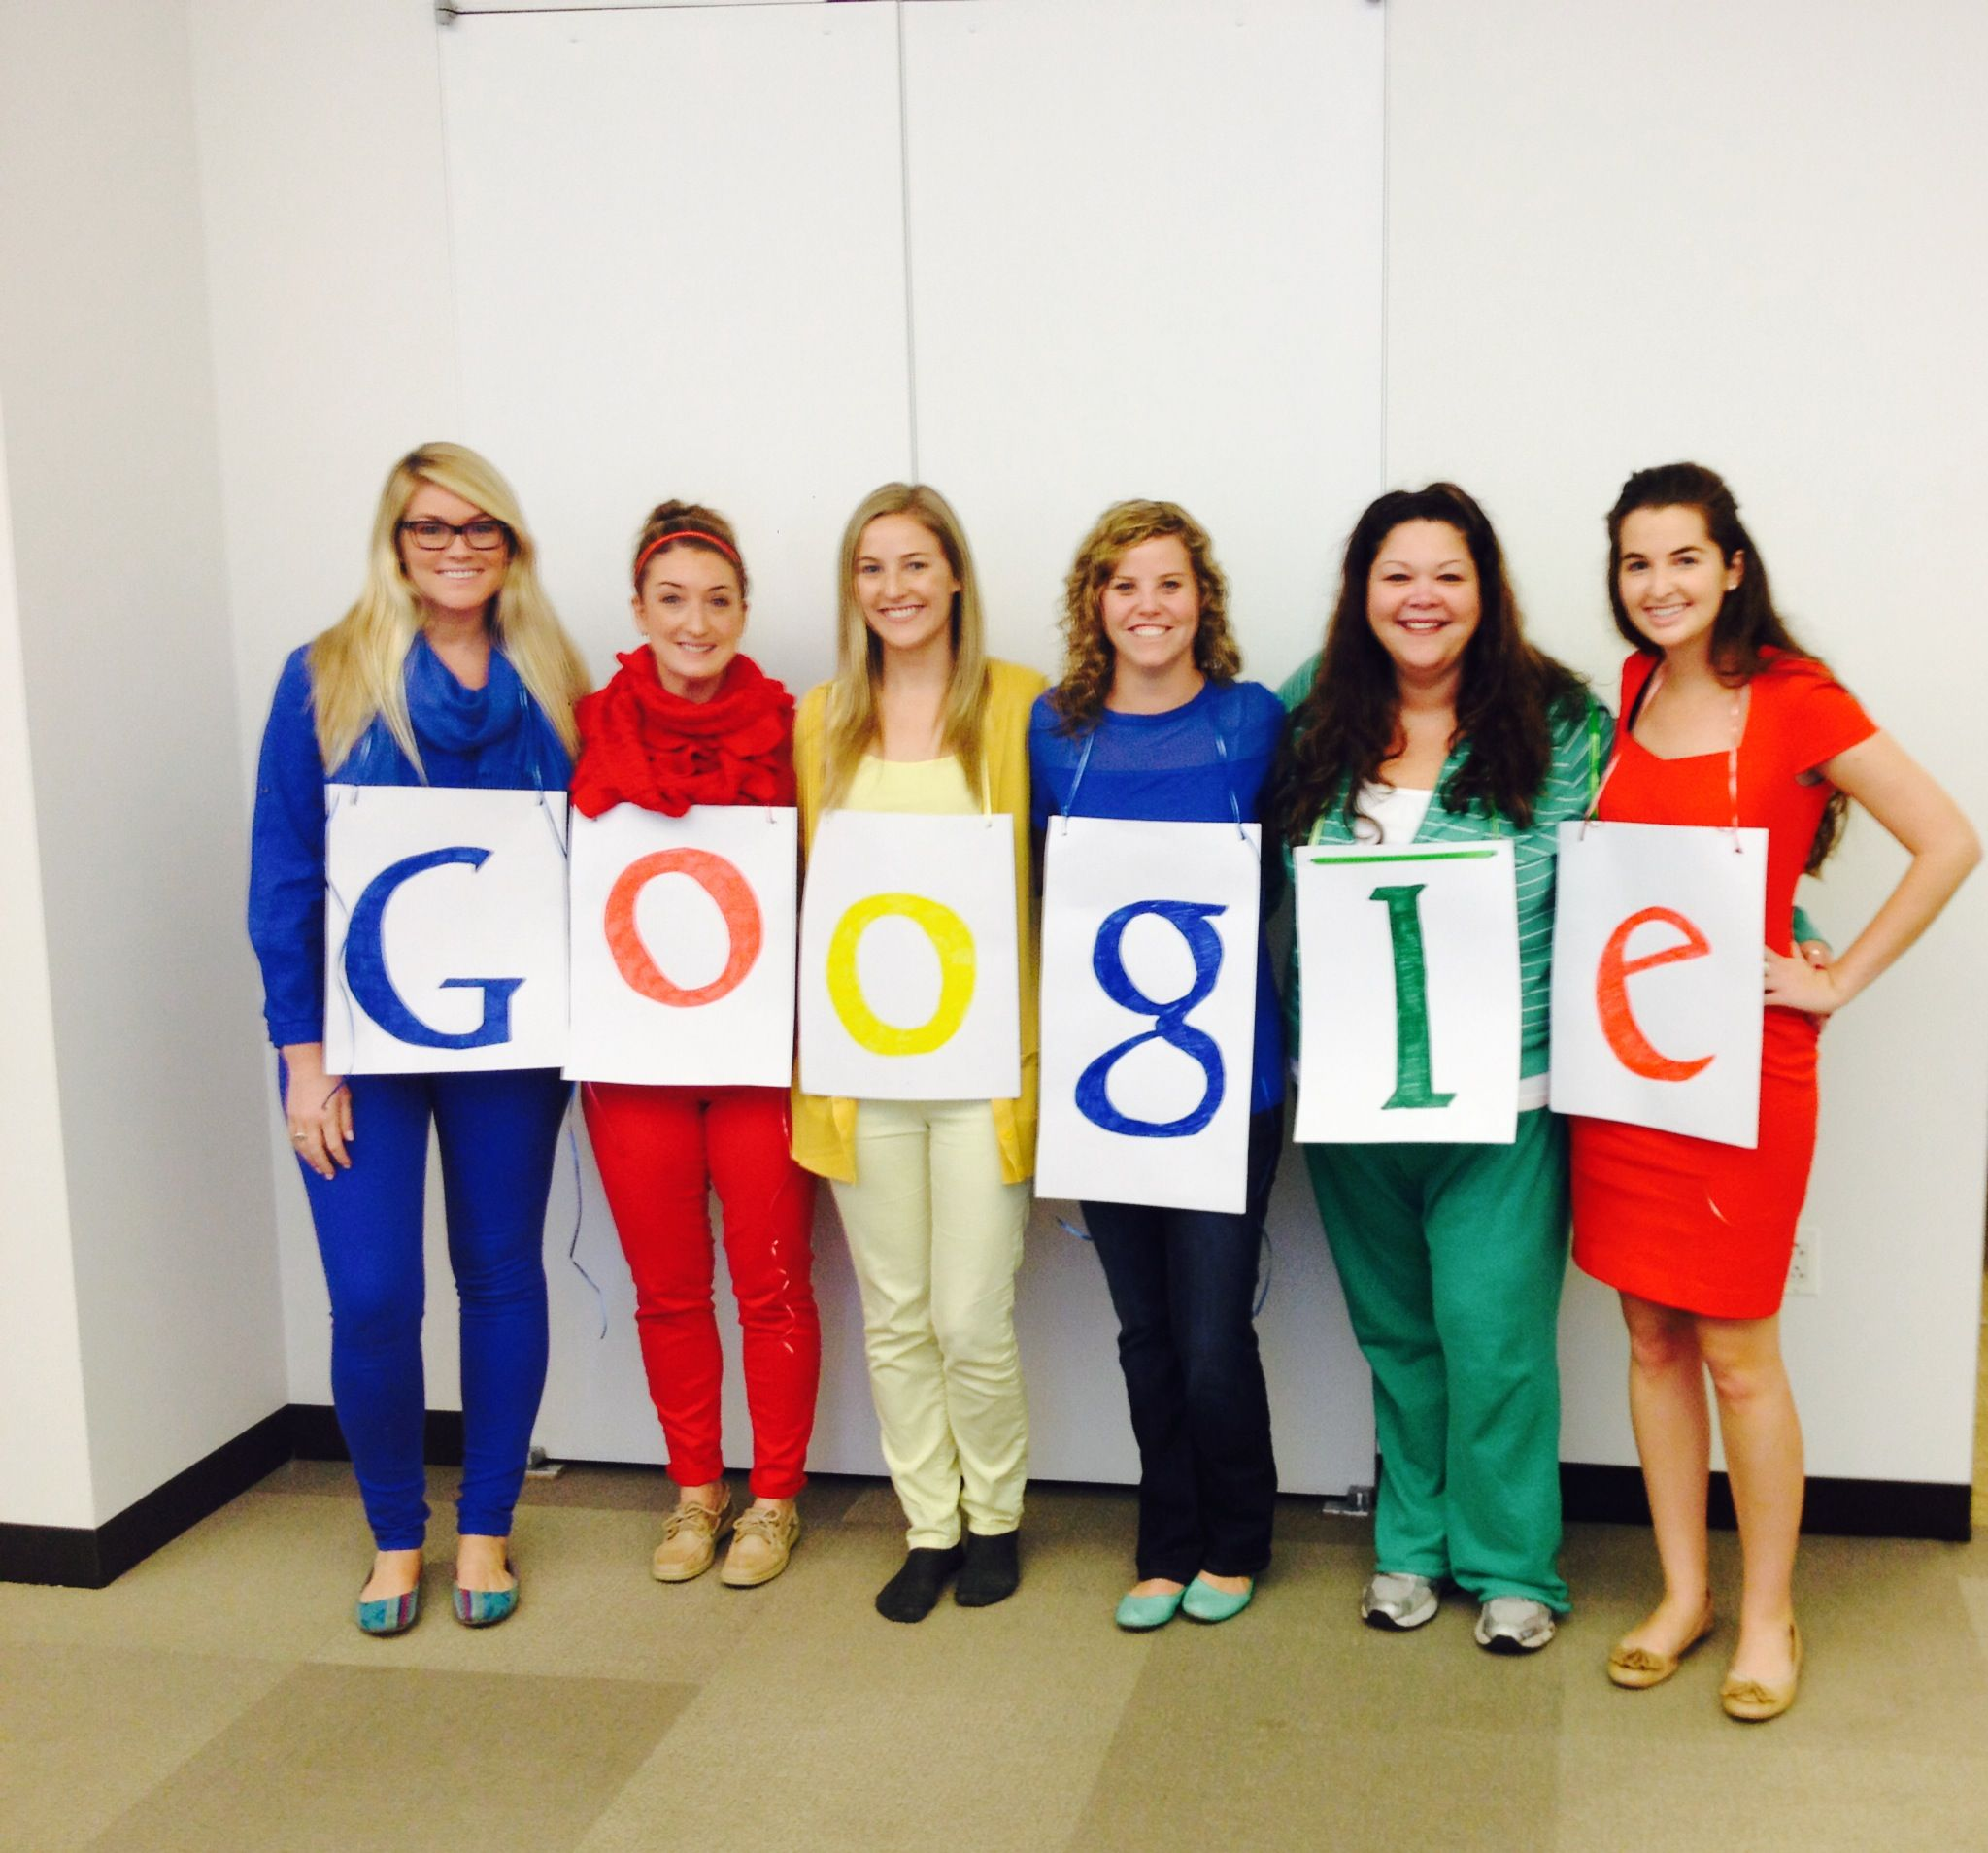 Google Main Office: Our Google Girls! #Google #Work #Costumes #Group Worklife